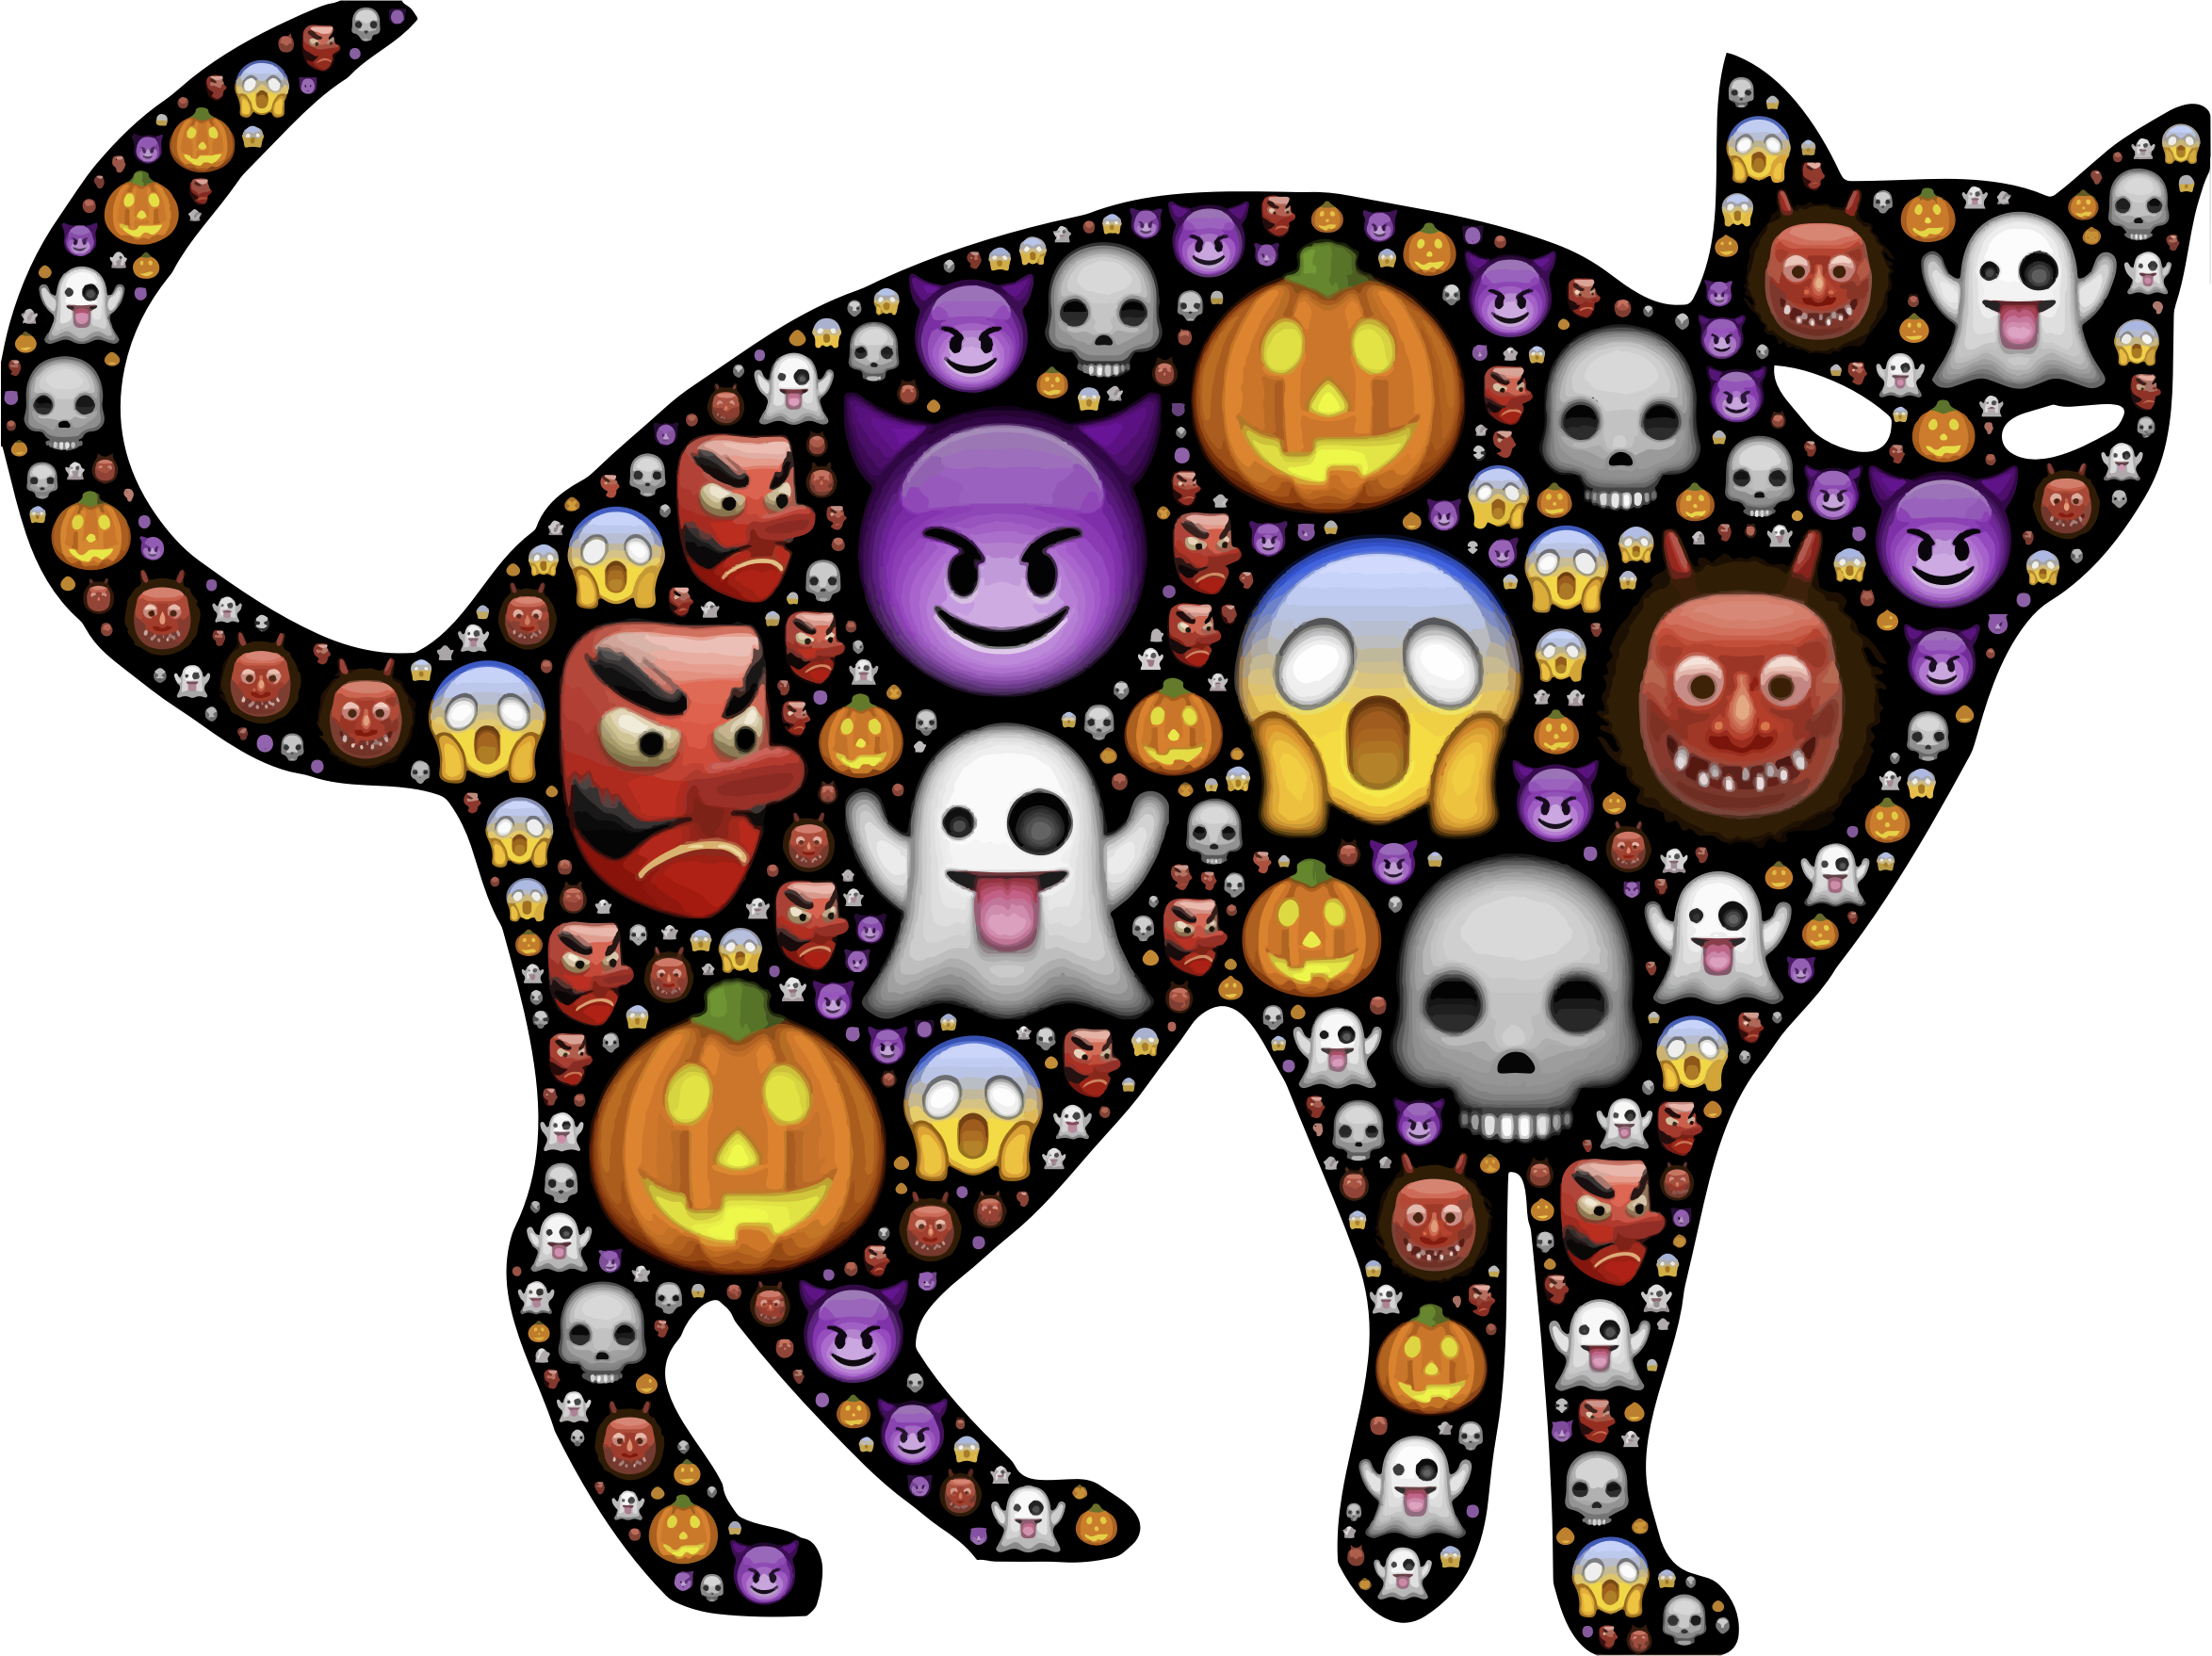 Halloween games clipart clip art black and white stock Halloween cats and kittens | Clipart - Colorful Halloween Cat ... clip art black and white stock